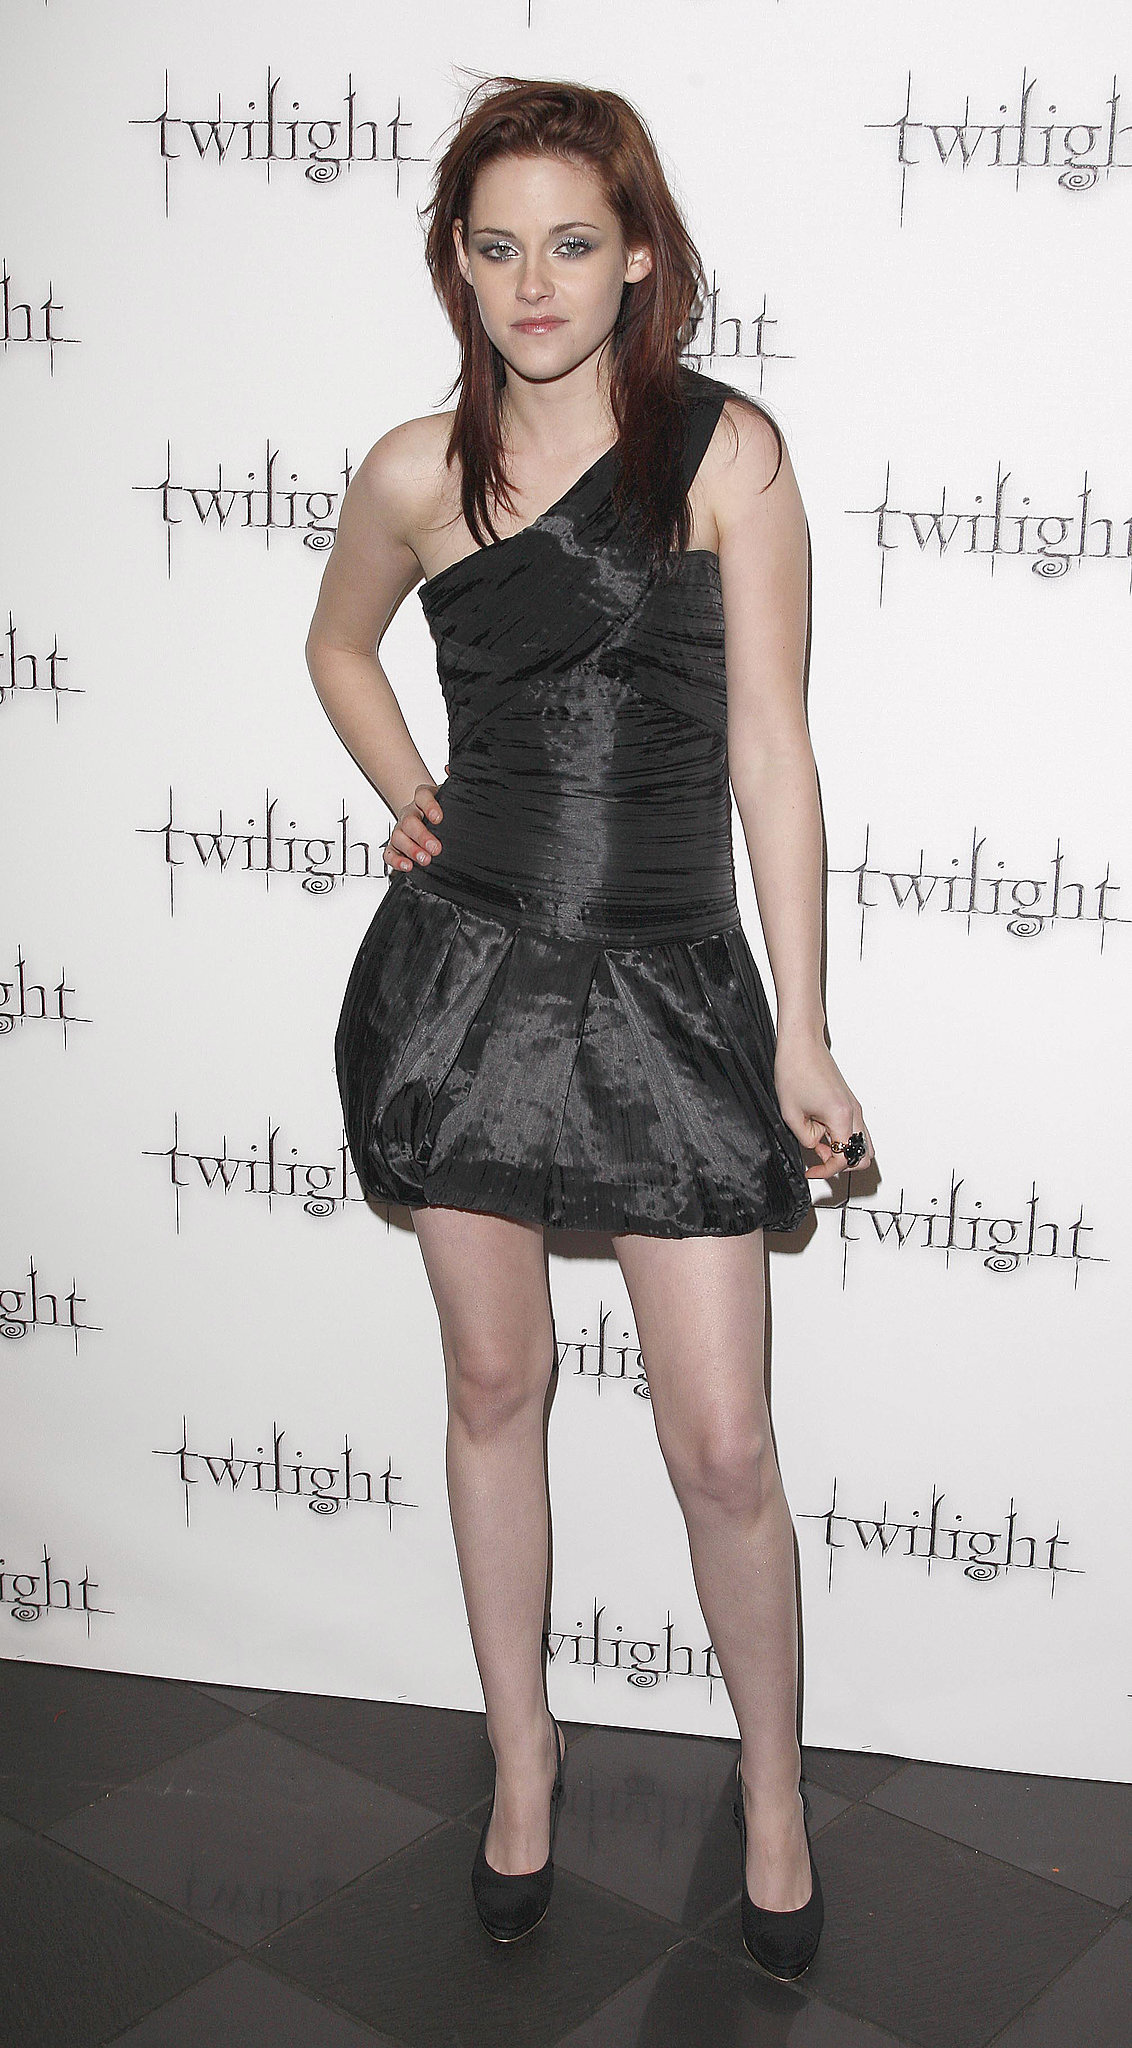 Featuring a one-shoulder cut and bubble skirt, Stewart's LBD was anything but ordinary in December 2008.